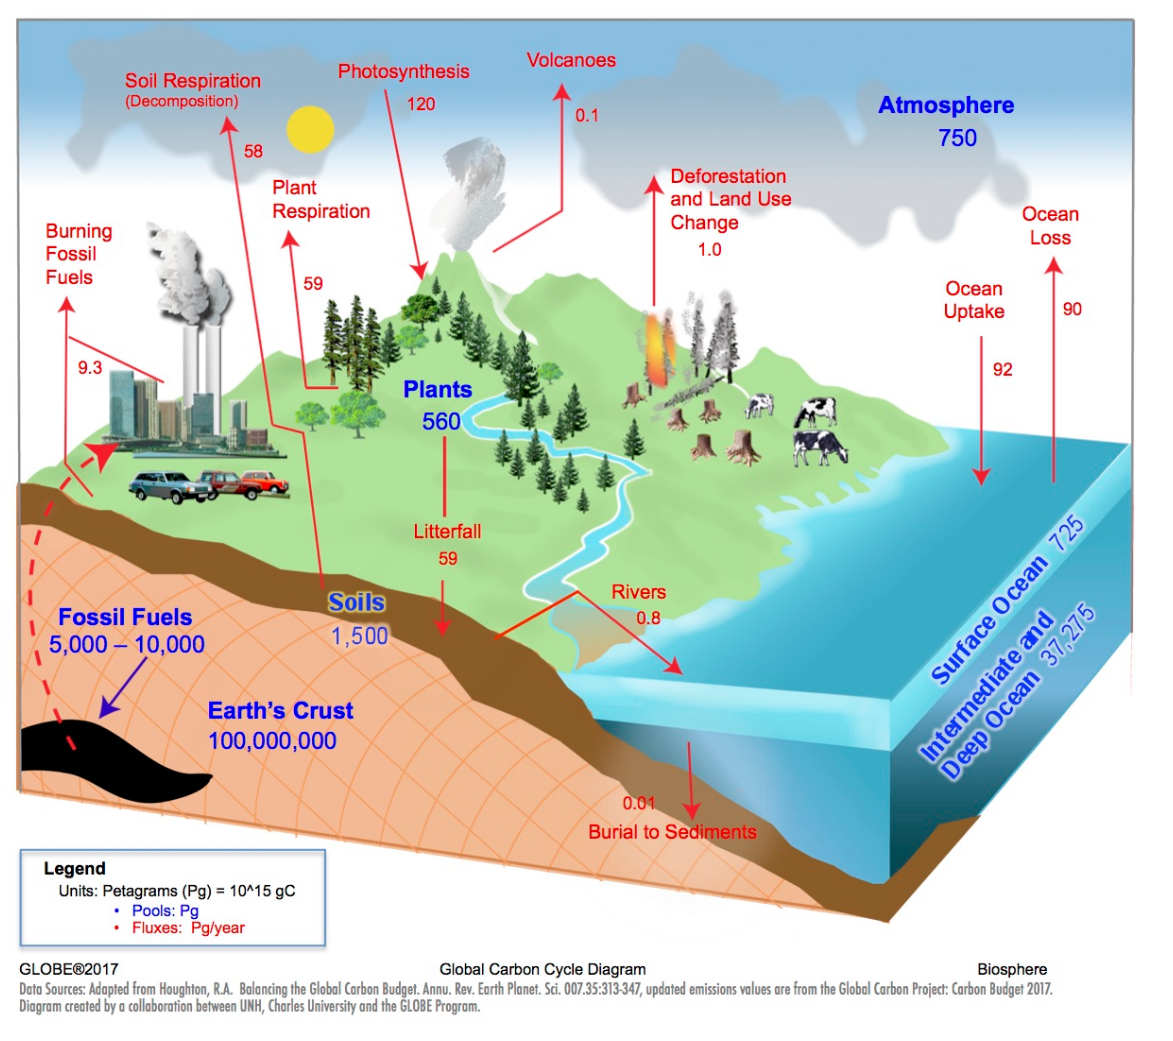 Global Carbon Cycle Diagram